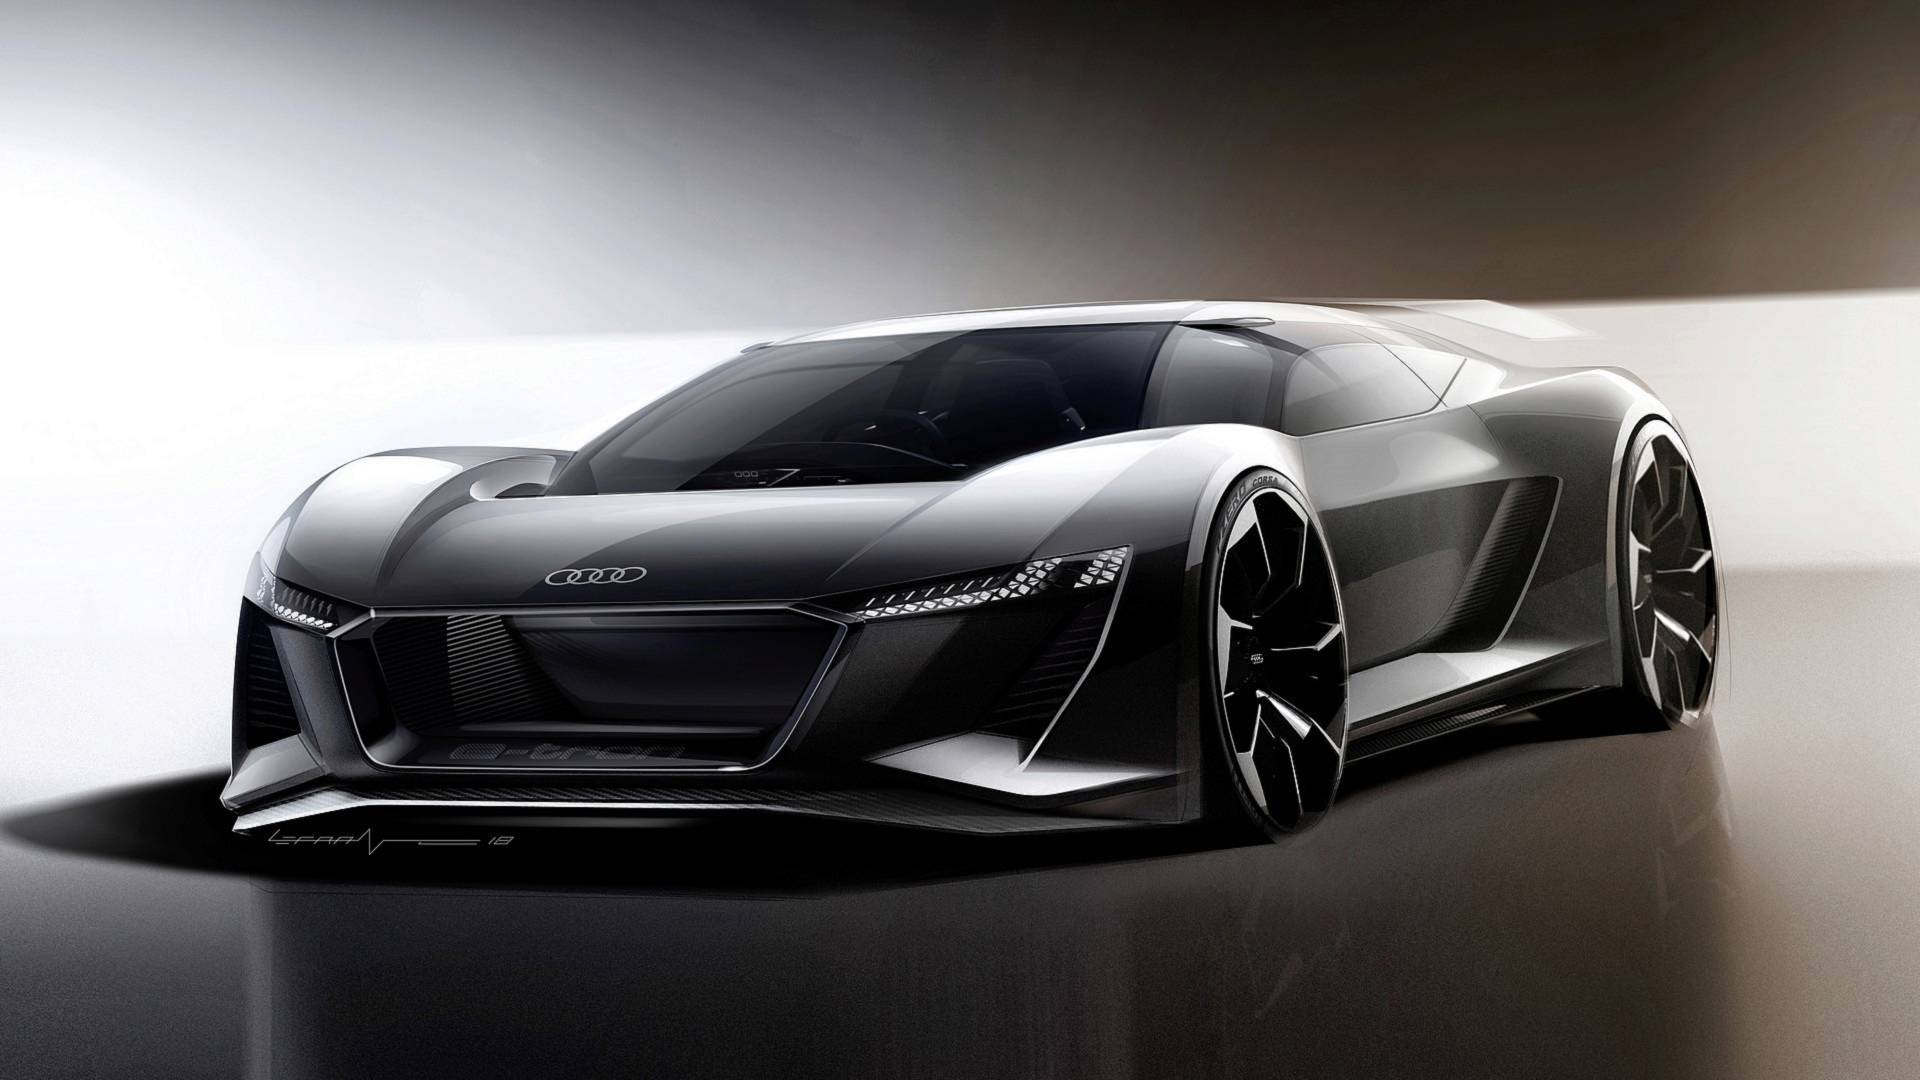 Audi Pb18 E Tron Looks Out Of This World In Official Videos